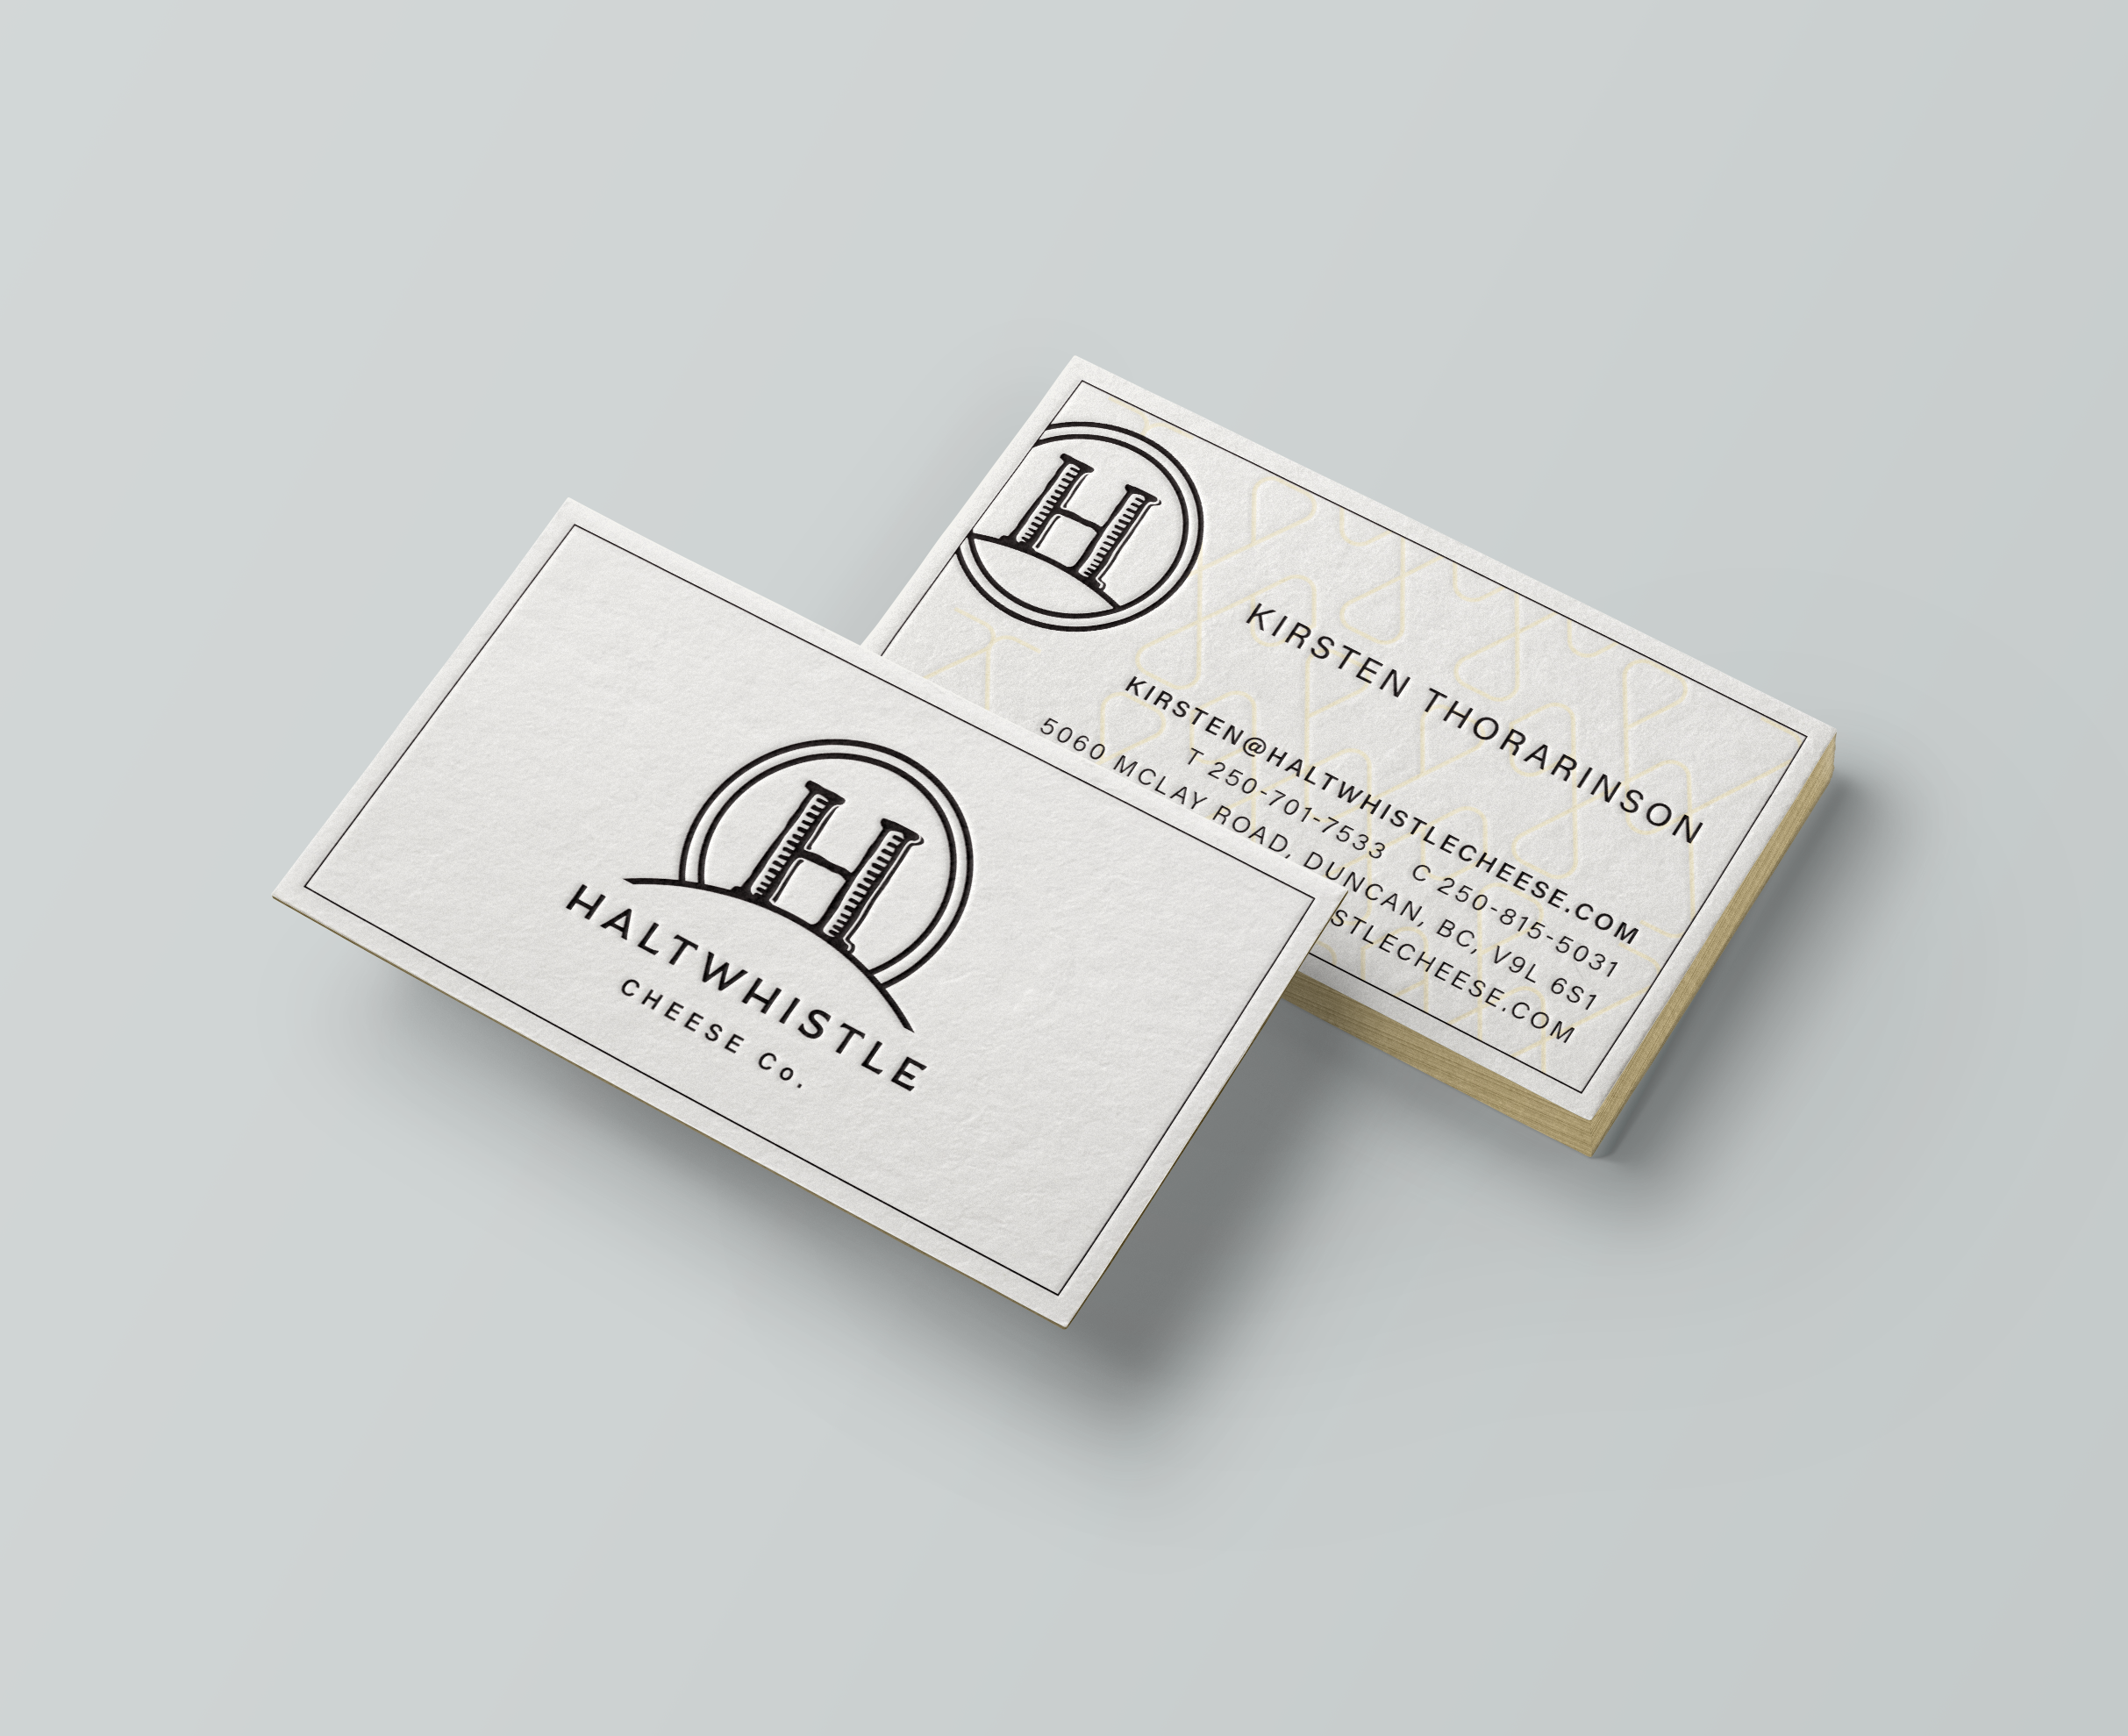 New logo and business card design